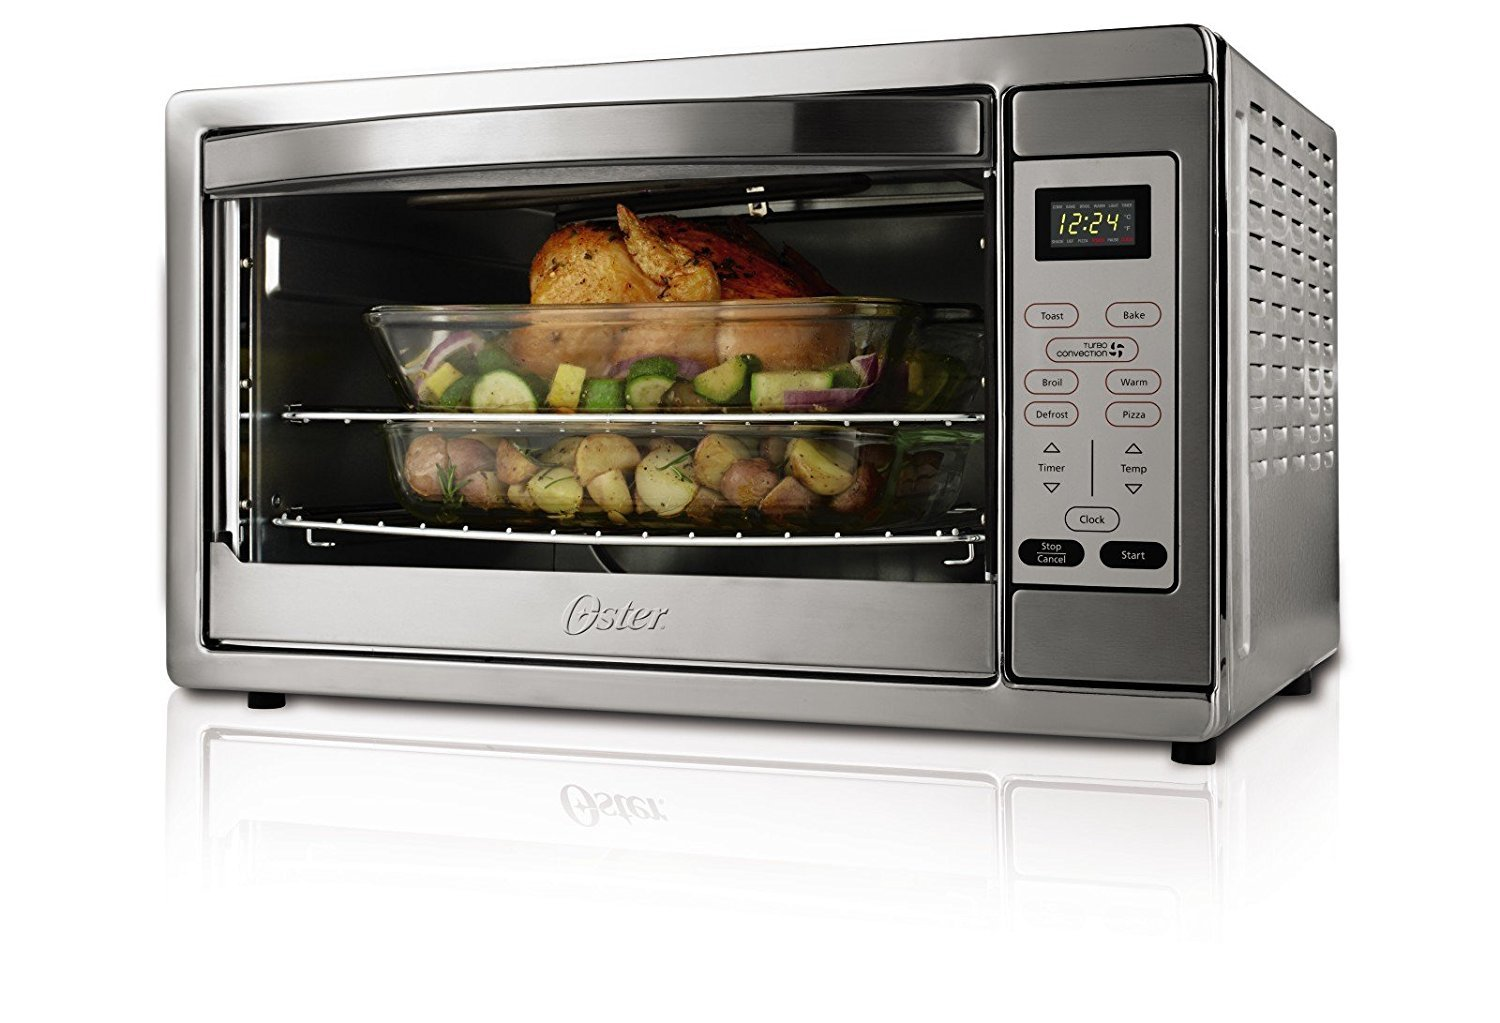 2 x Oster Extra Large Digital Countertop Oven, Stainless Steel, TSSTTVDGXL-SHP by Oster